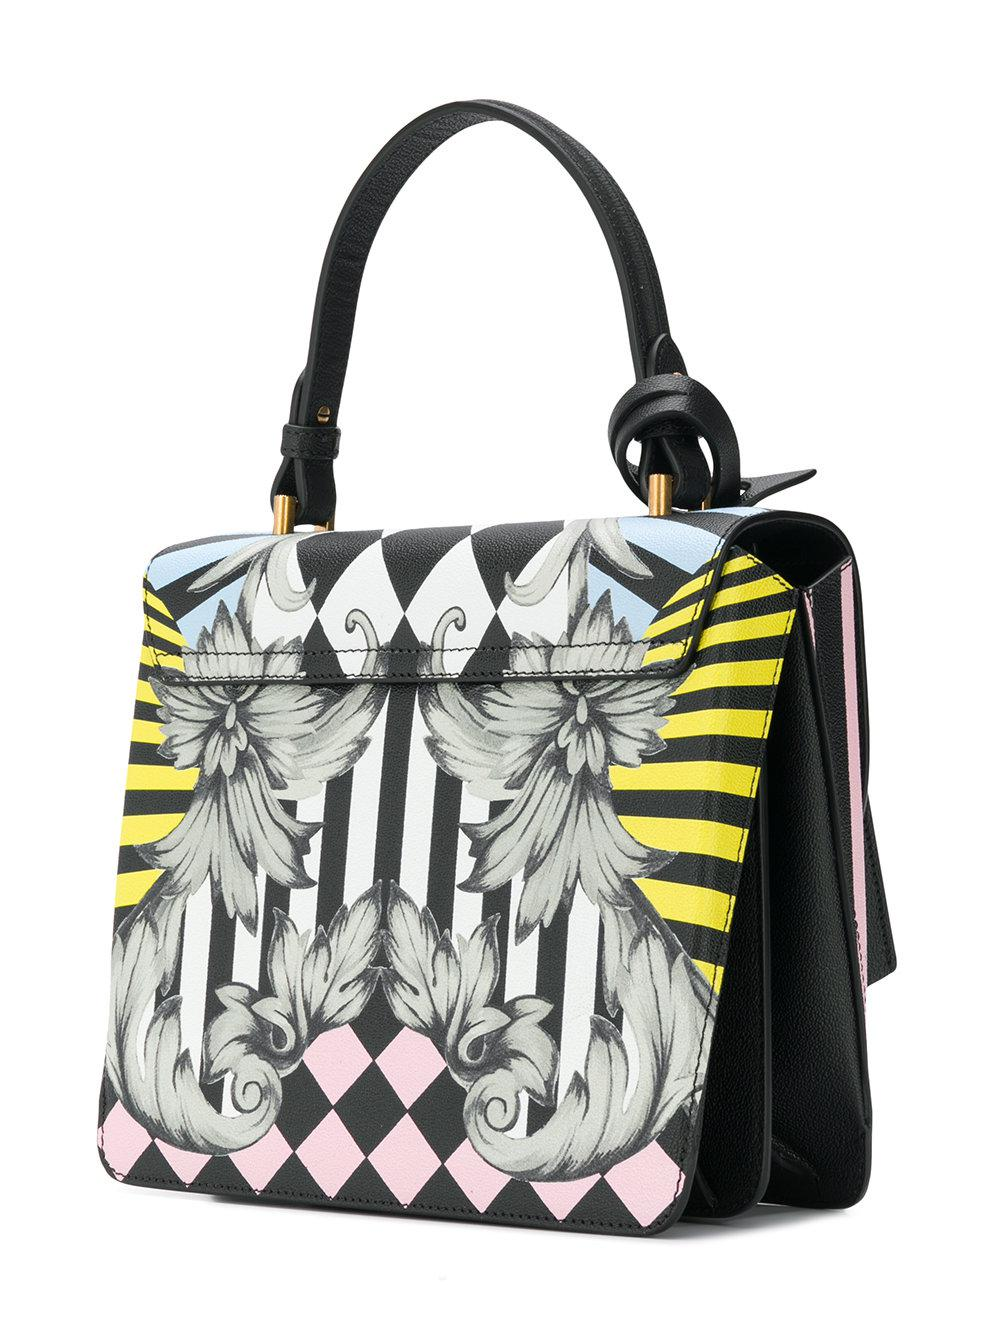 Versace Leather Printed Tote in Black